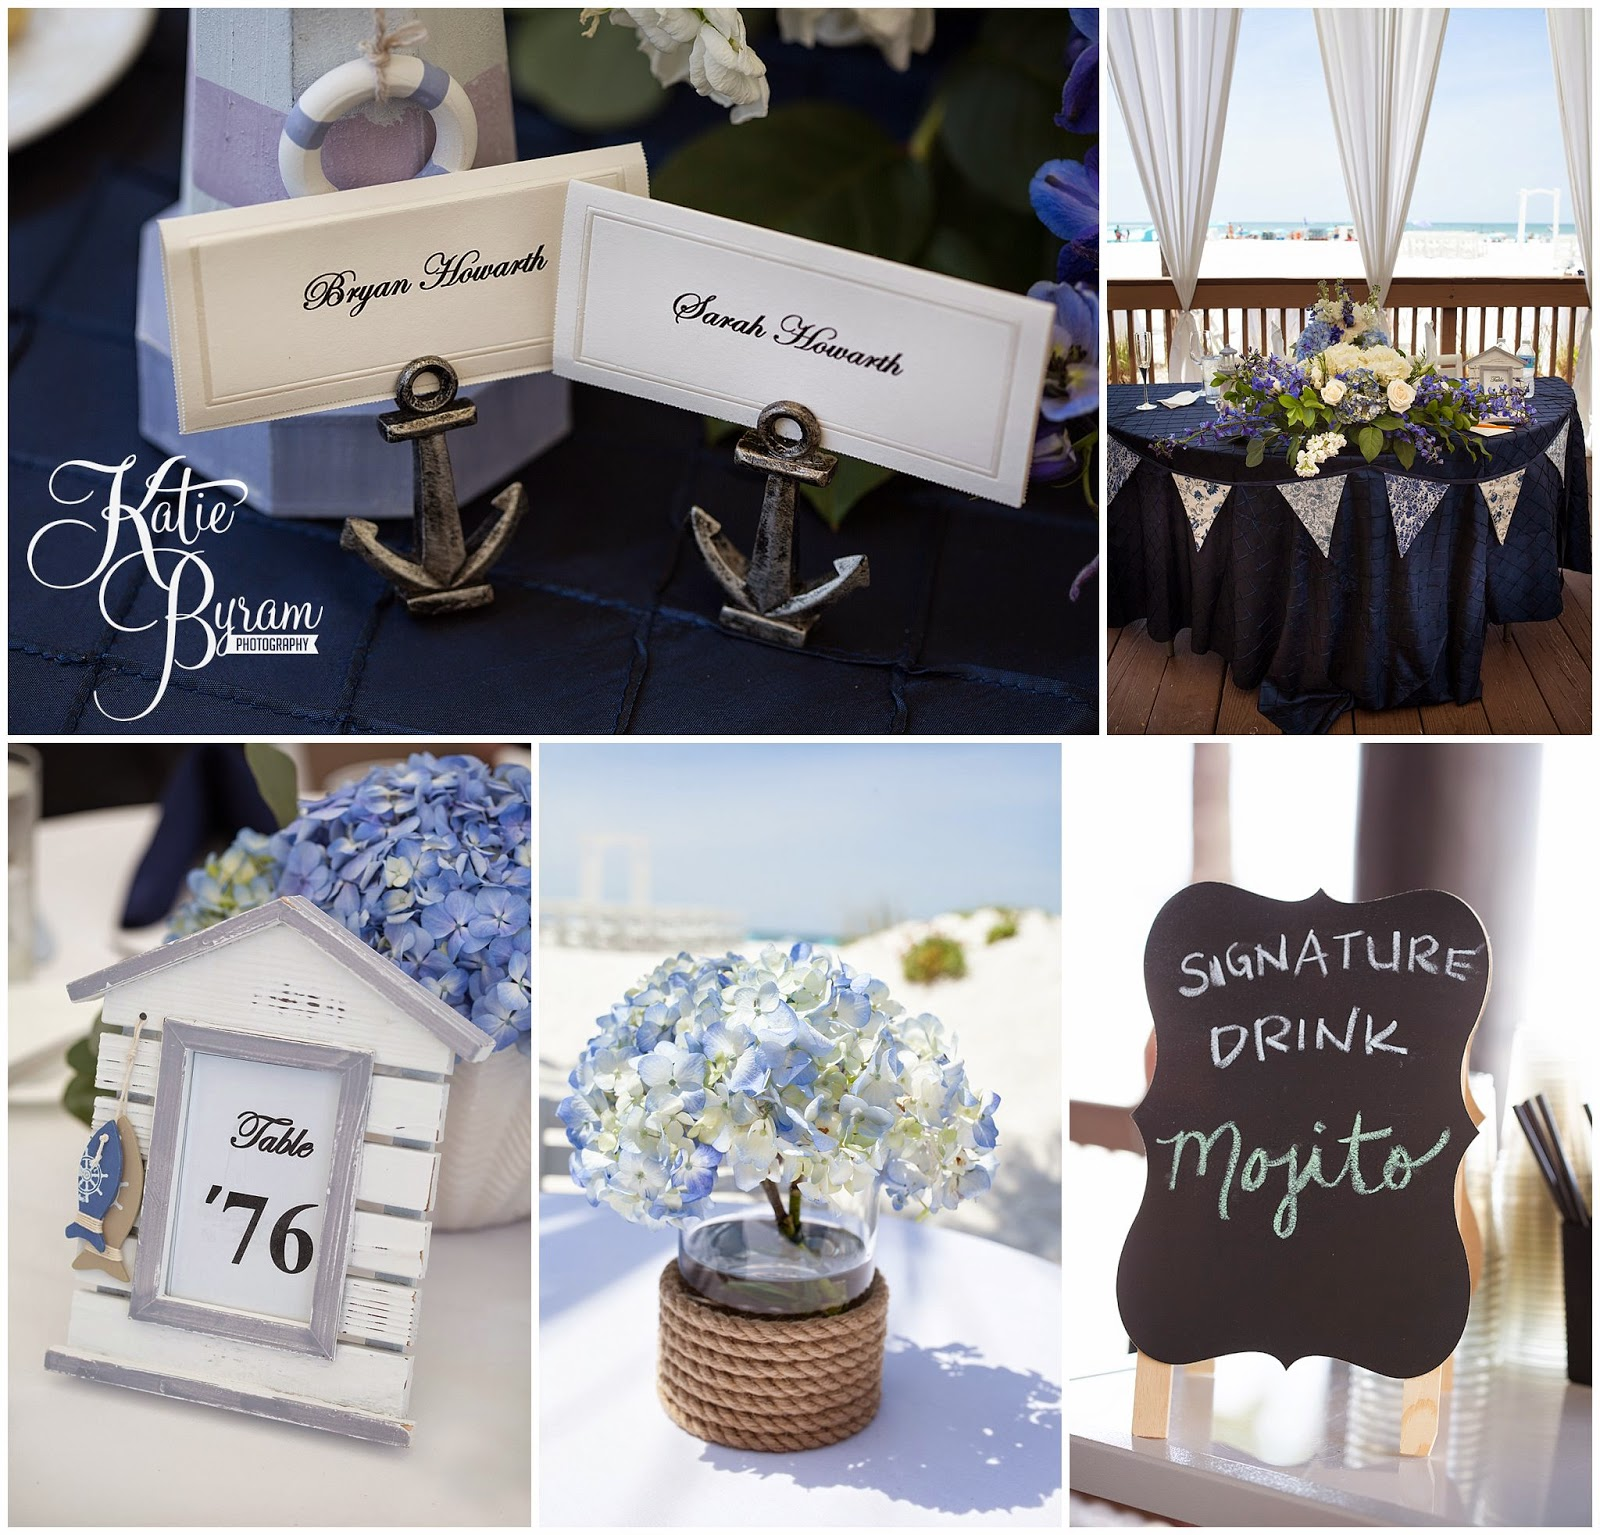 nautical wedding, beach wedding theme, destination wedding, clearwater beach wedding, hilton clearwater beach wedding, katie byram photography, florida wedding